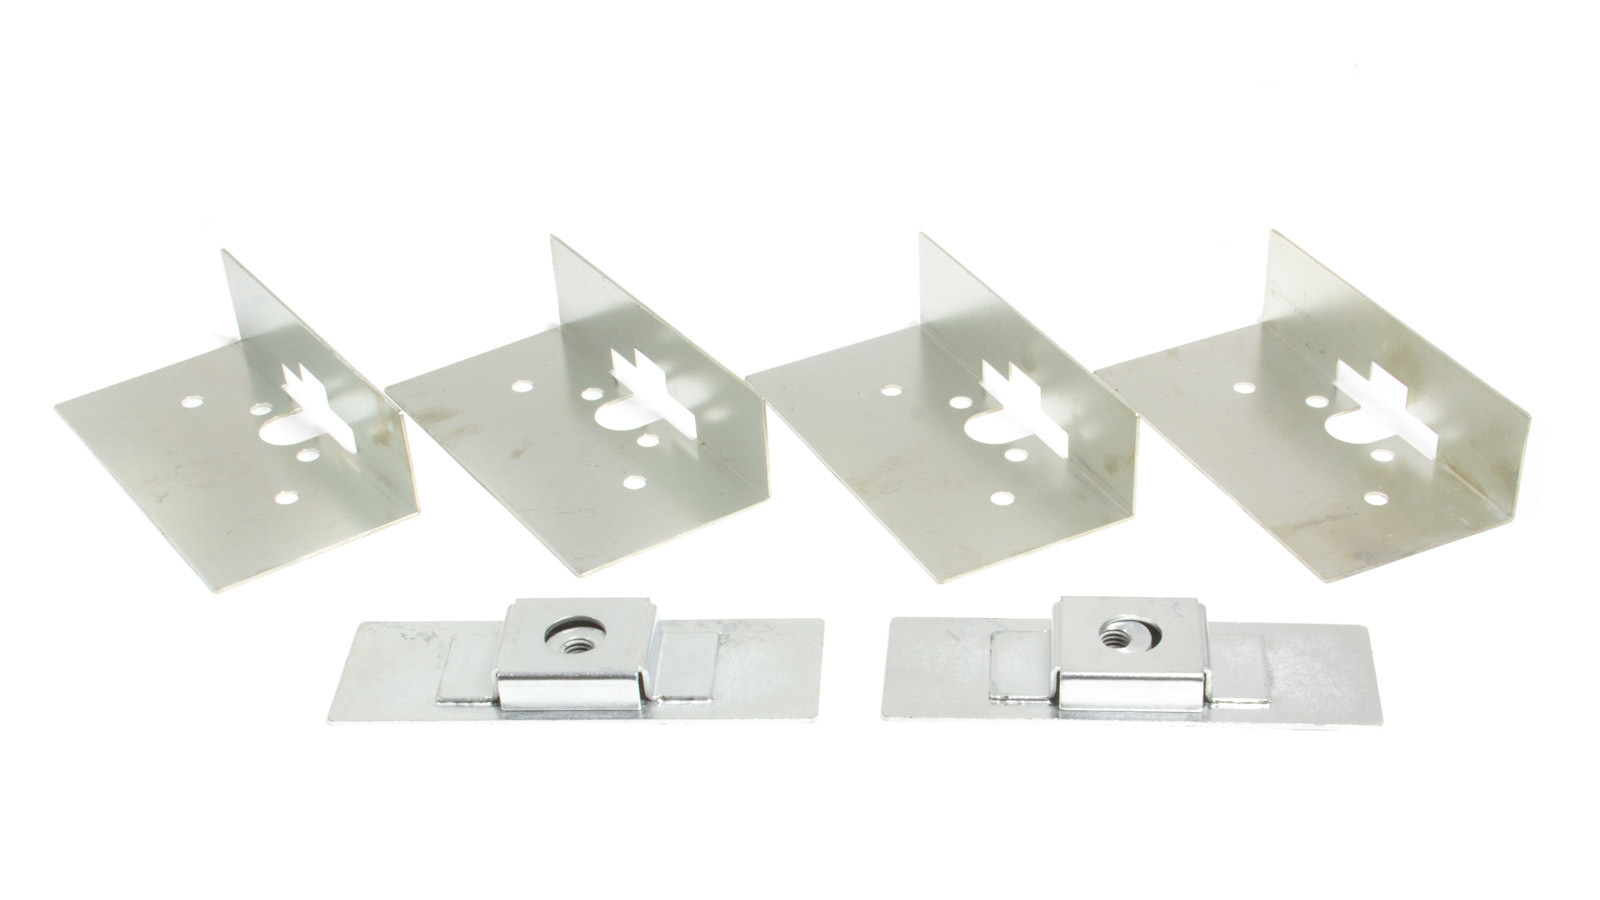 AUTBCINSTL Auto-Loc Bearclaw Installation Kit For Large Latches